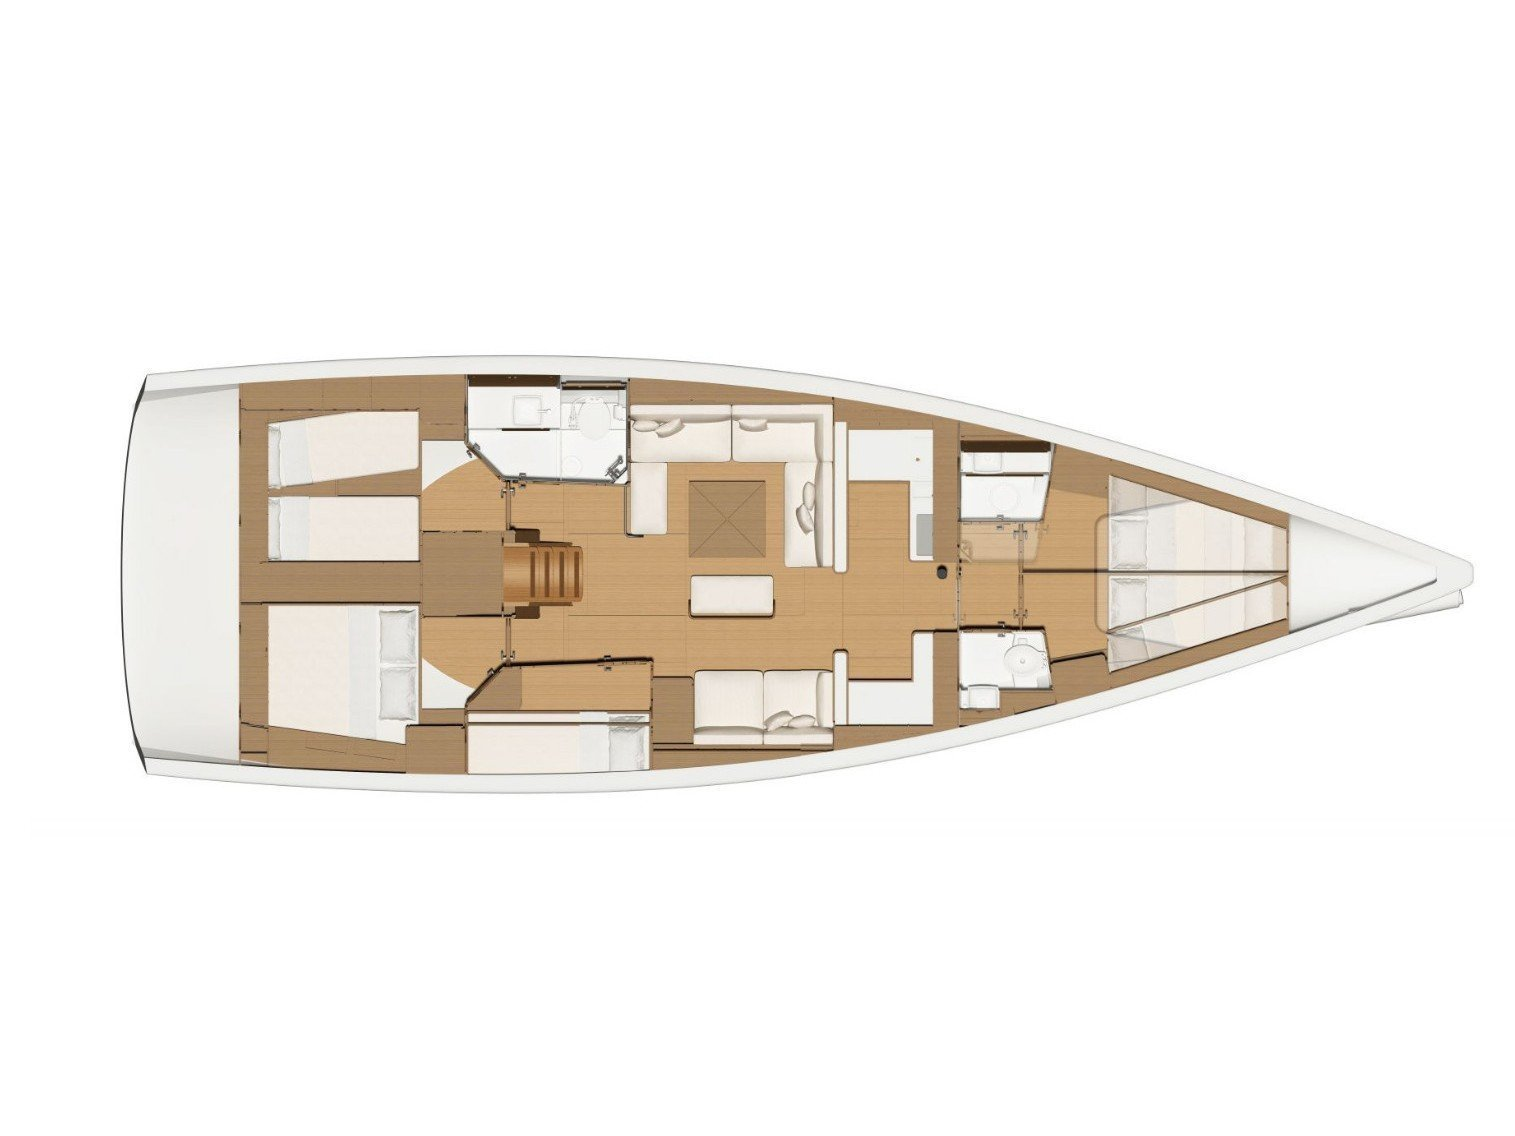 Dufour 520 GL (EURUS - BLUE HULL, AC+GEN., UNDERWATER LIGHTS) Plan image - 4